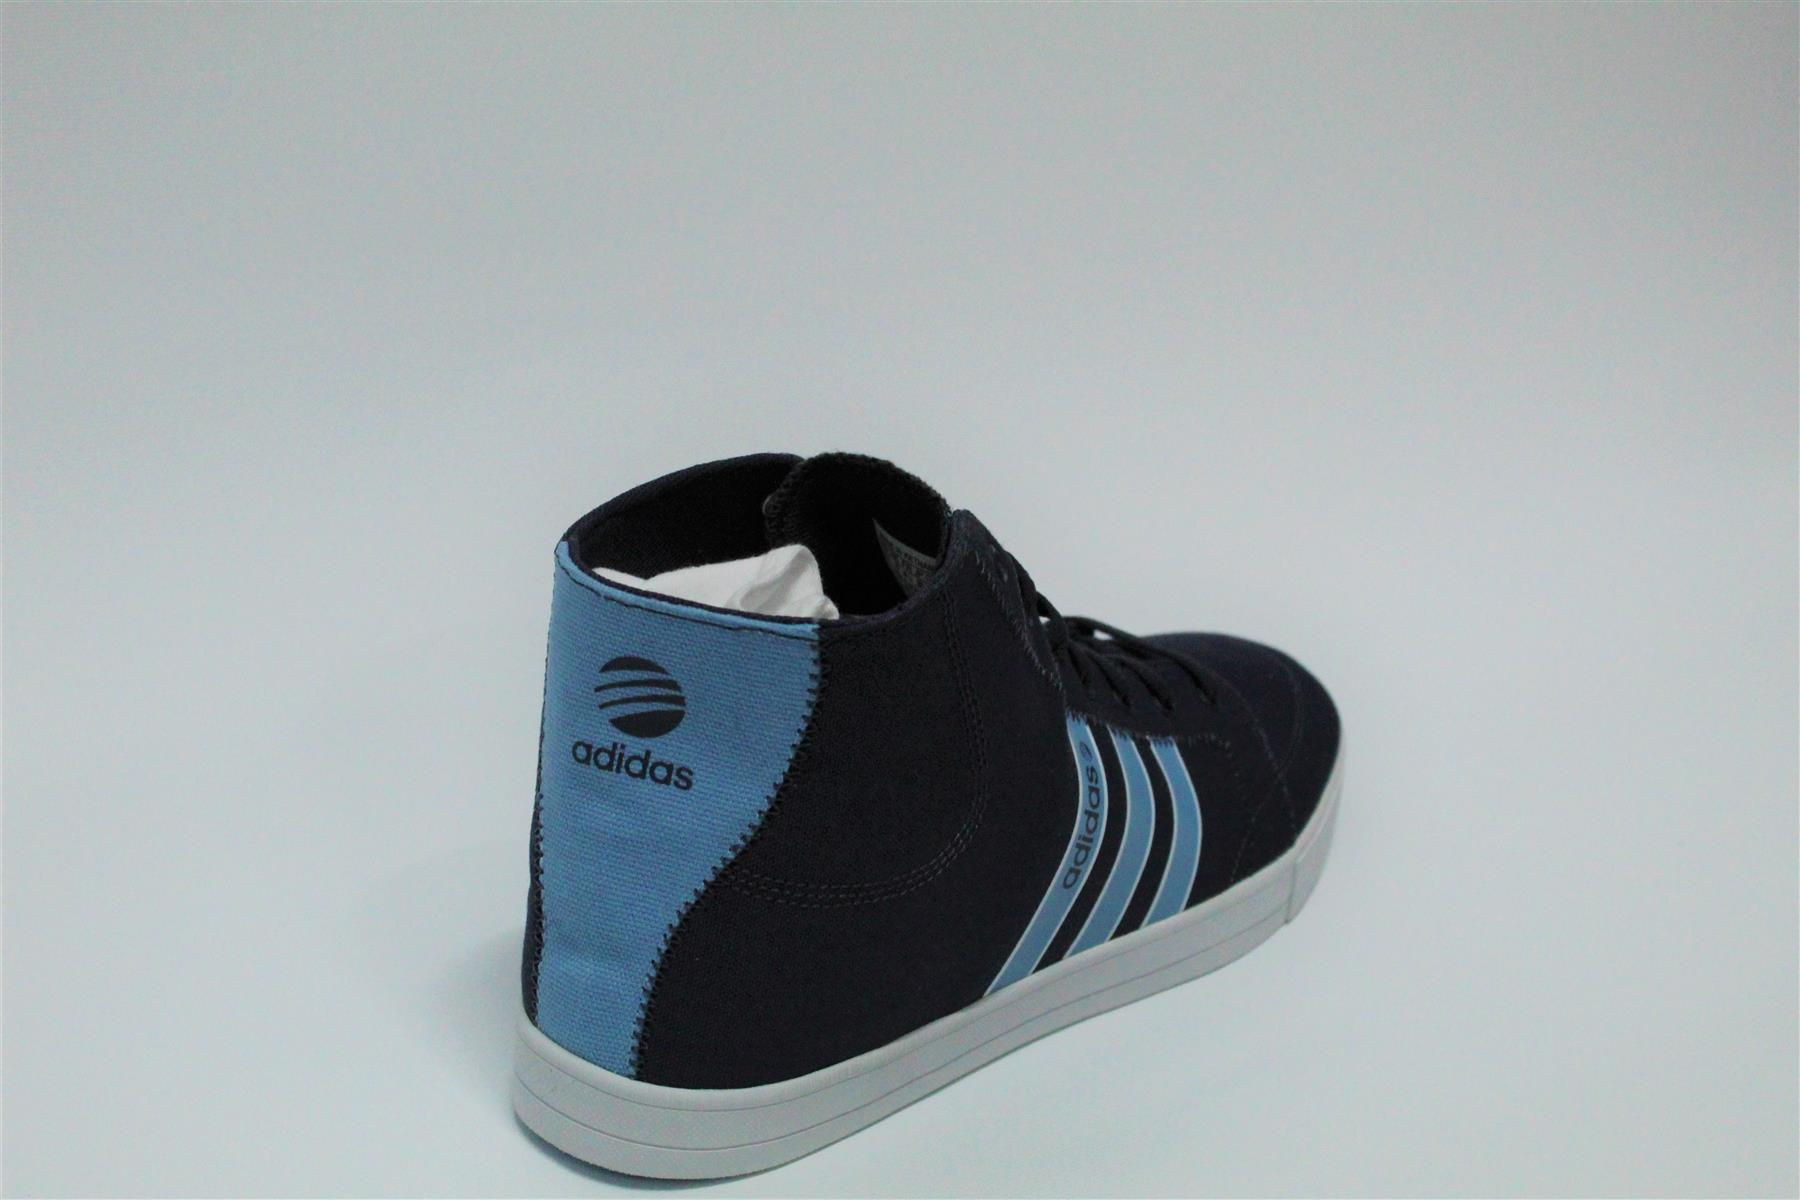 Details about adidas Neo Mens Trainers Shoes Footwear Laces up Hi Tops Sports Ortholite Q26020